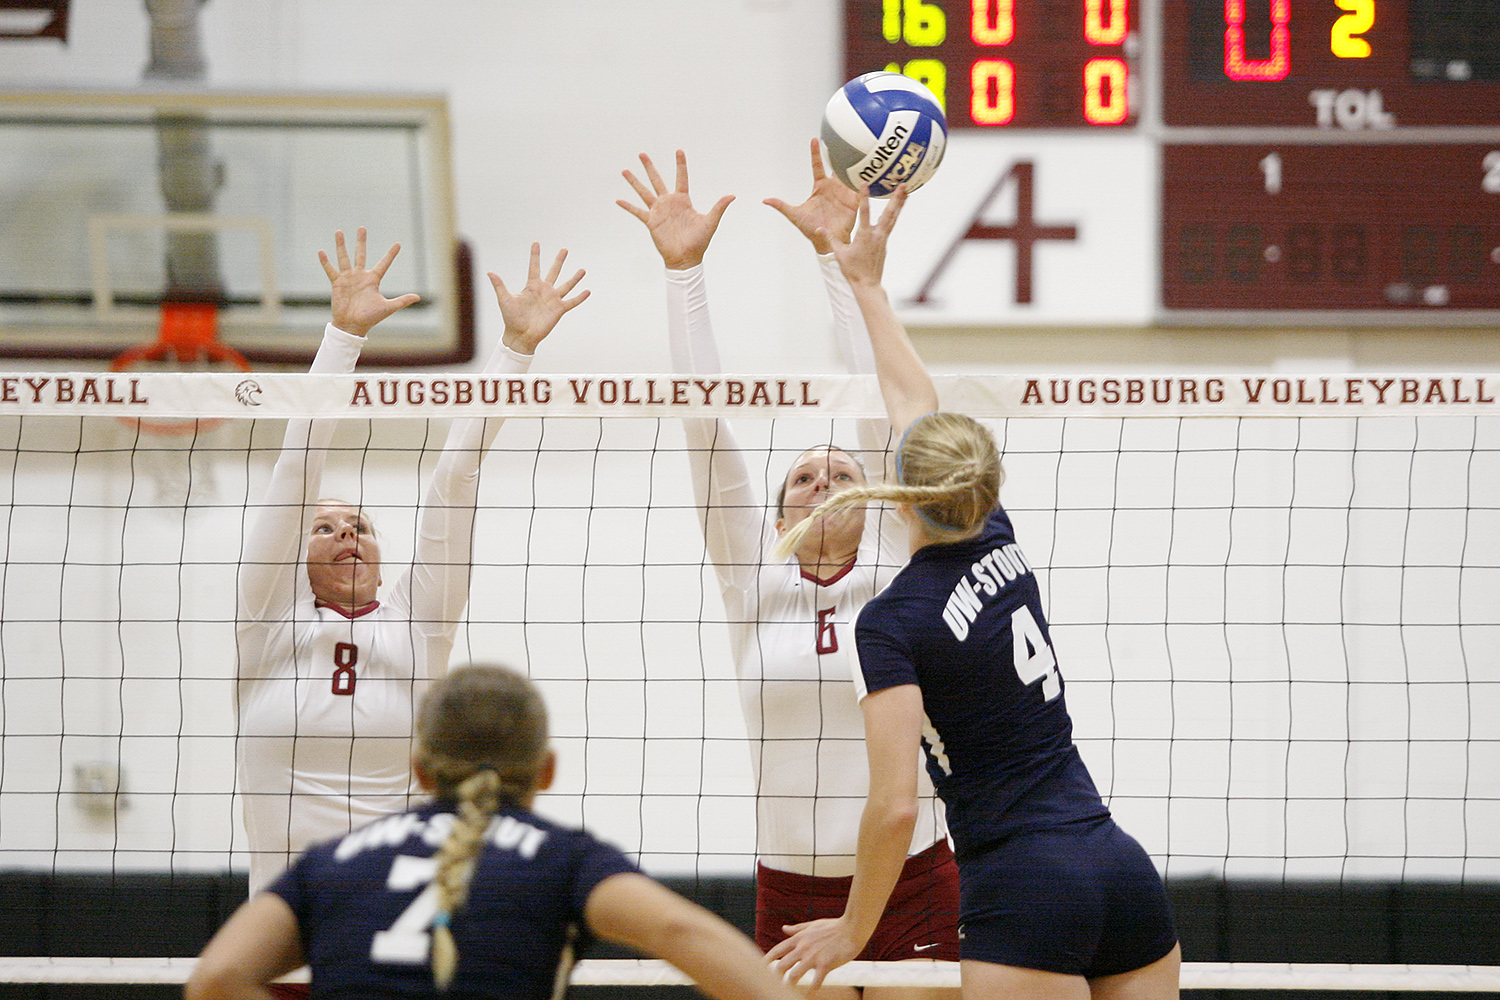 Augsburg volleyball players Jessica Lillquist (8) and Colleen Ourada (6) go up for a block in the first set of a match between UW-Stout on September 11, 2014. Augsburg won 3-2 (25-12, 15-25, 25-18, 18-25, 15-9).